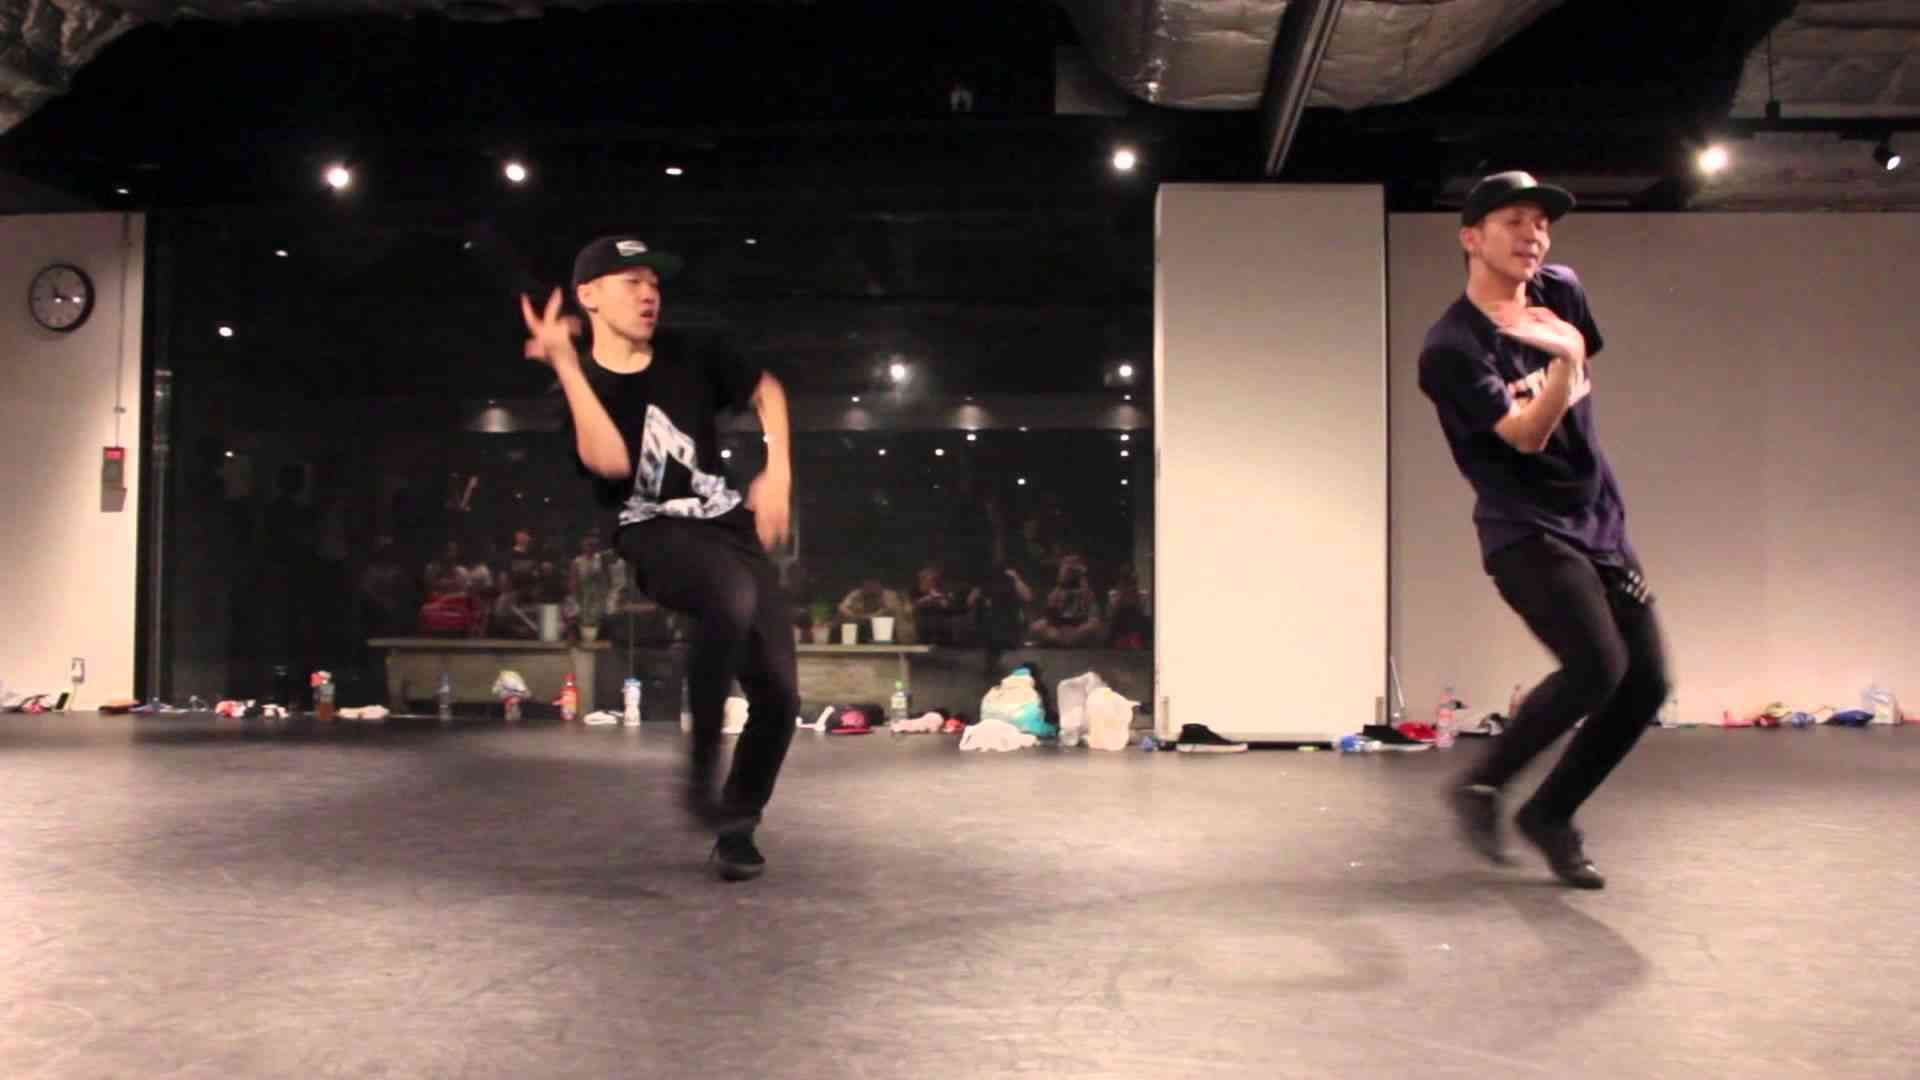 Shingo Okamoto & Kazuki(s**tkingz) | The Specktators - Neon Lights - YouTube